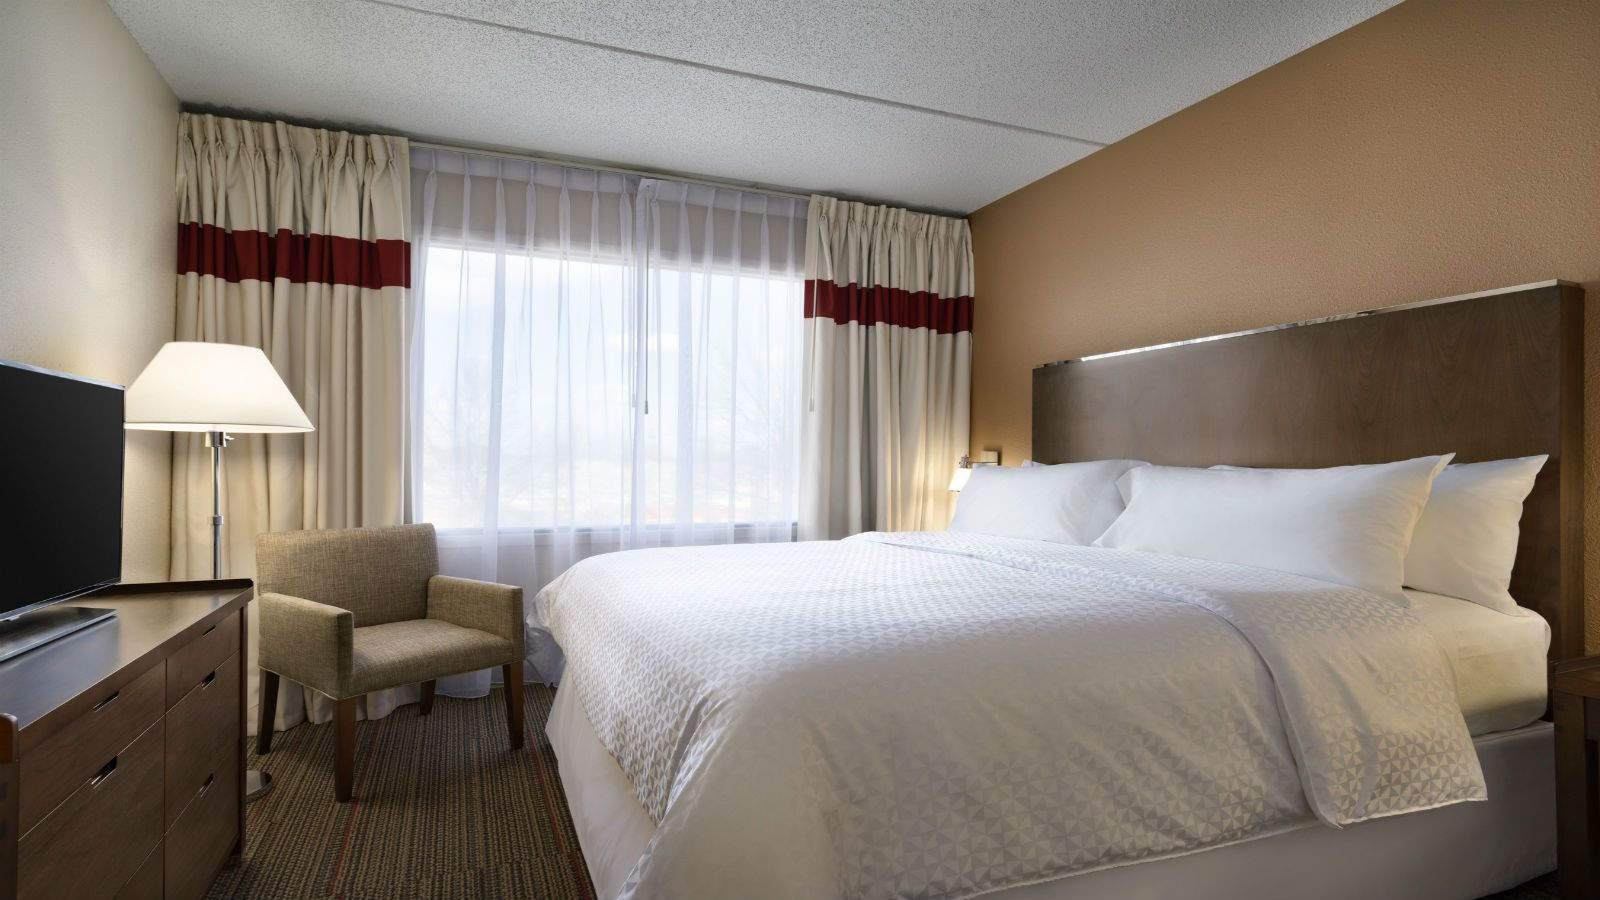 North Raleigh Accommodations - King Suite